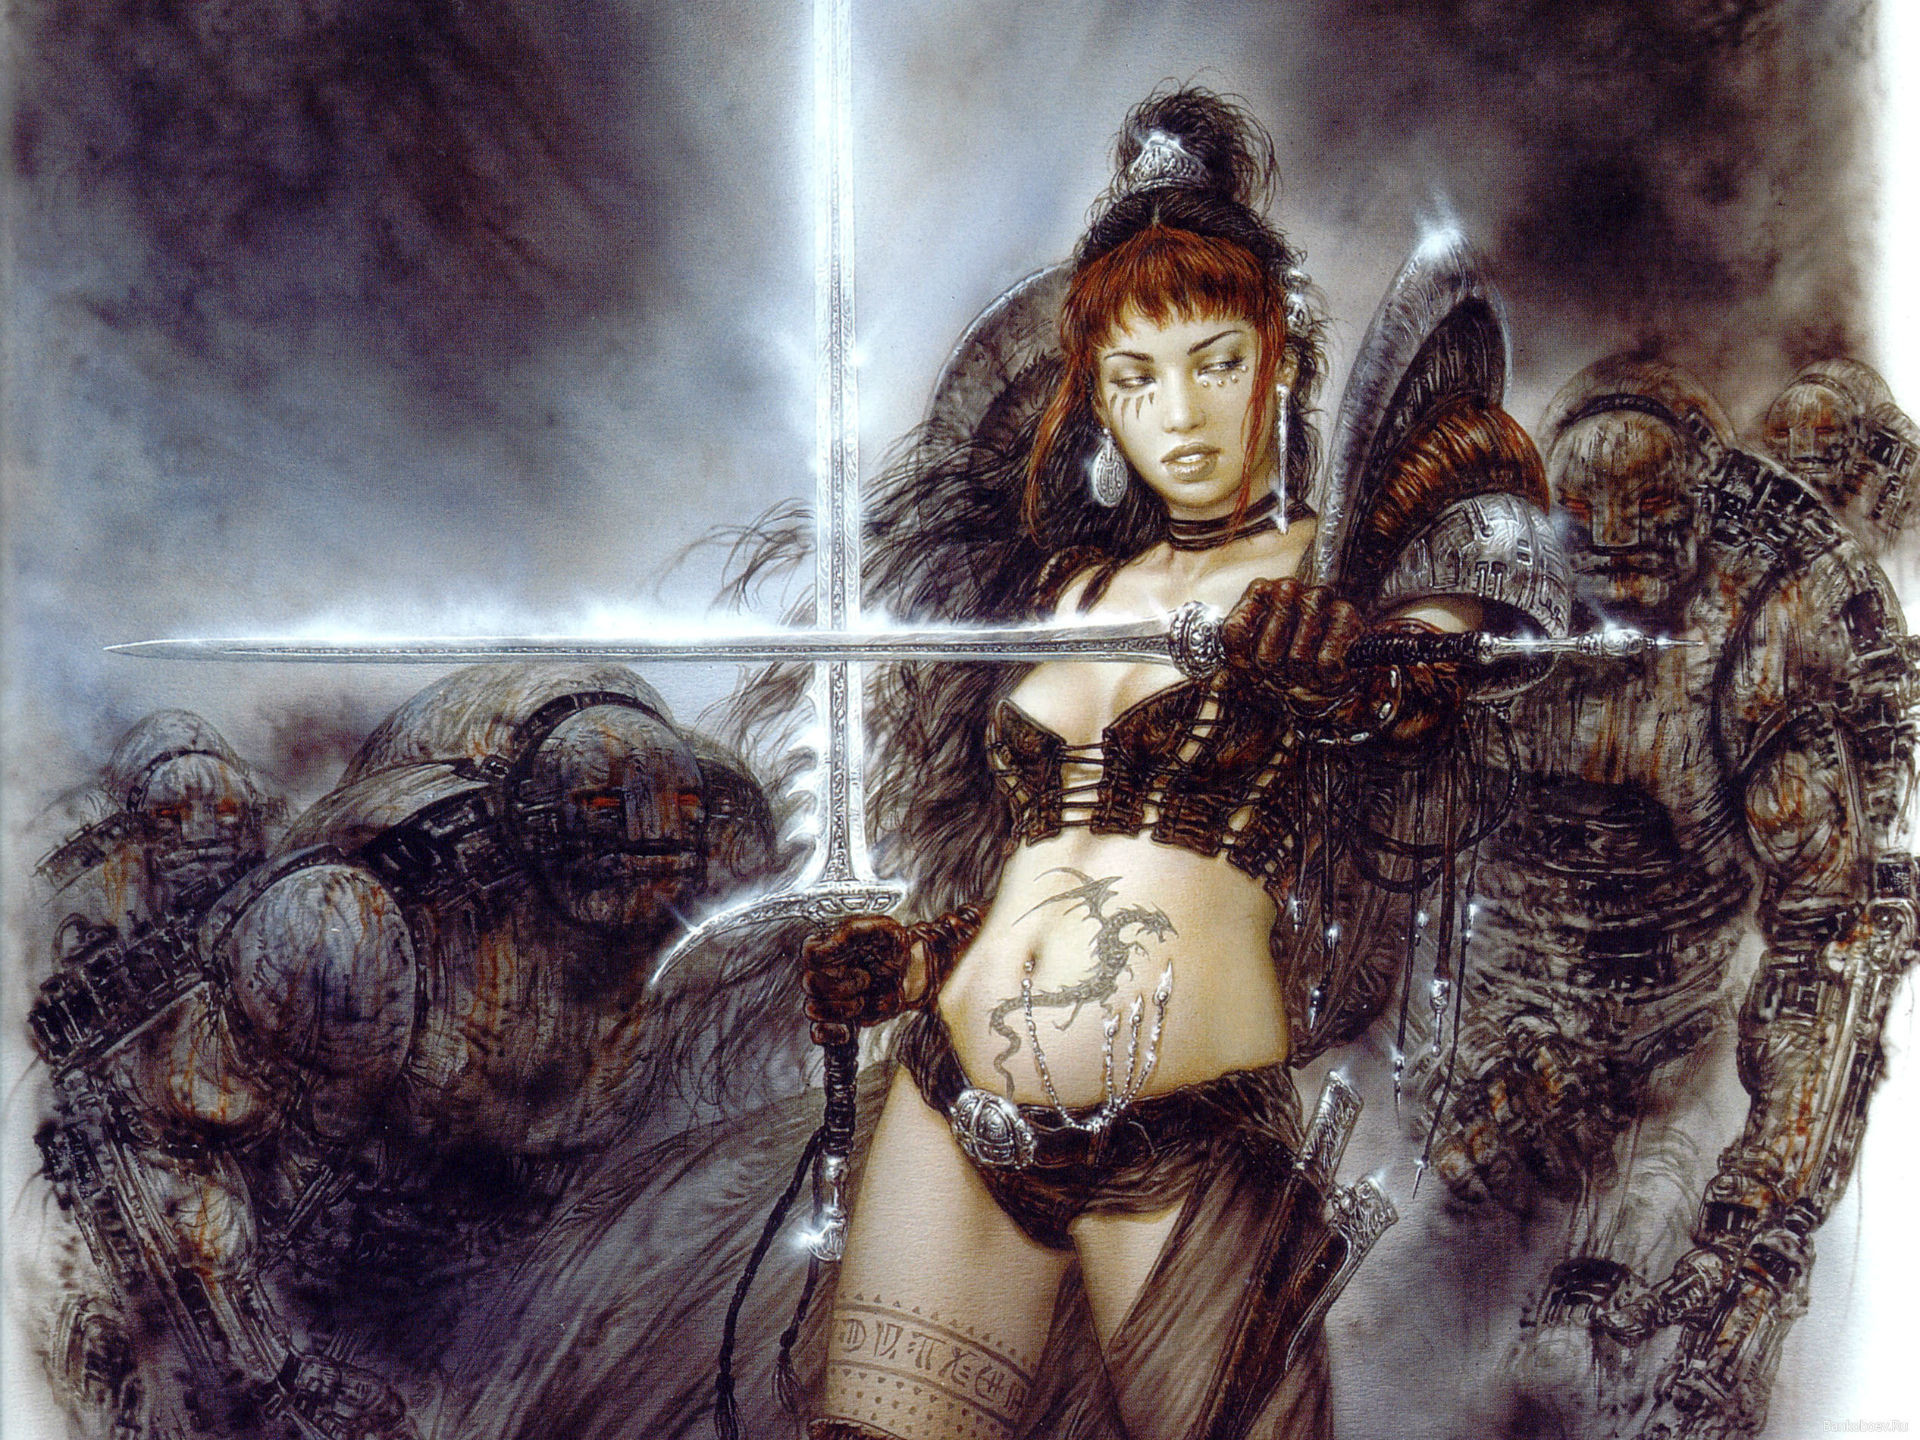 Res: 1920x1440, Luis-Royo Royo fantasy other warriors females weapons swords other wallpaper  |  | 22417 | WallpaperUP